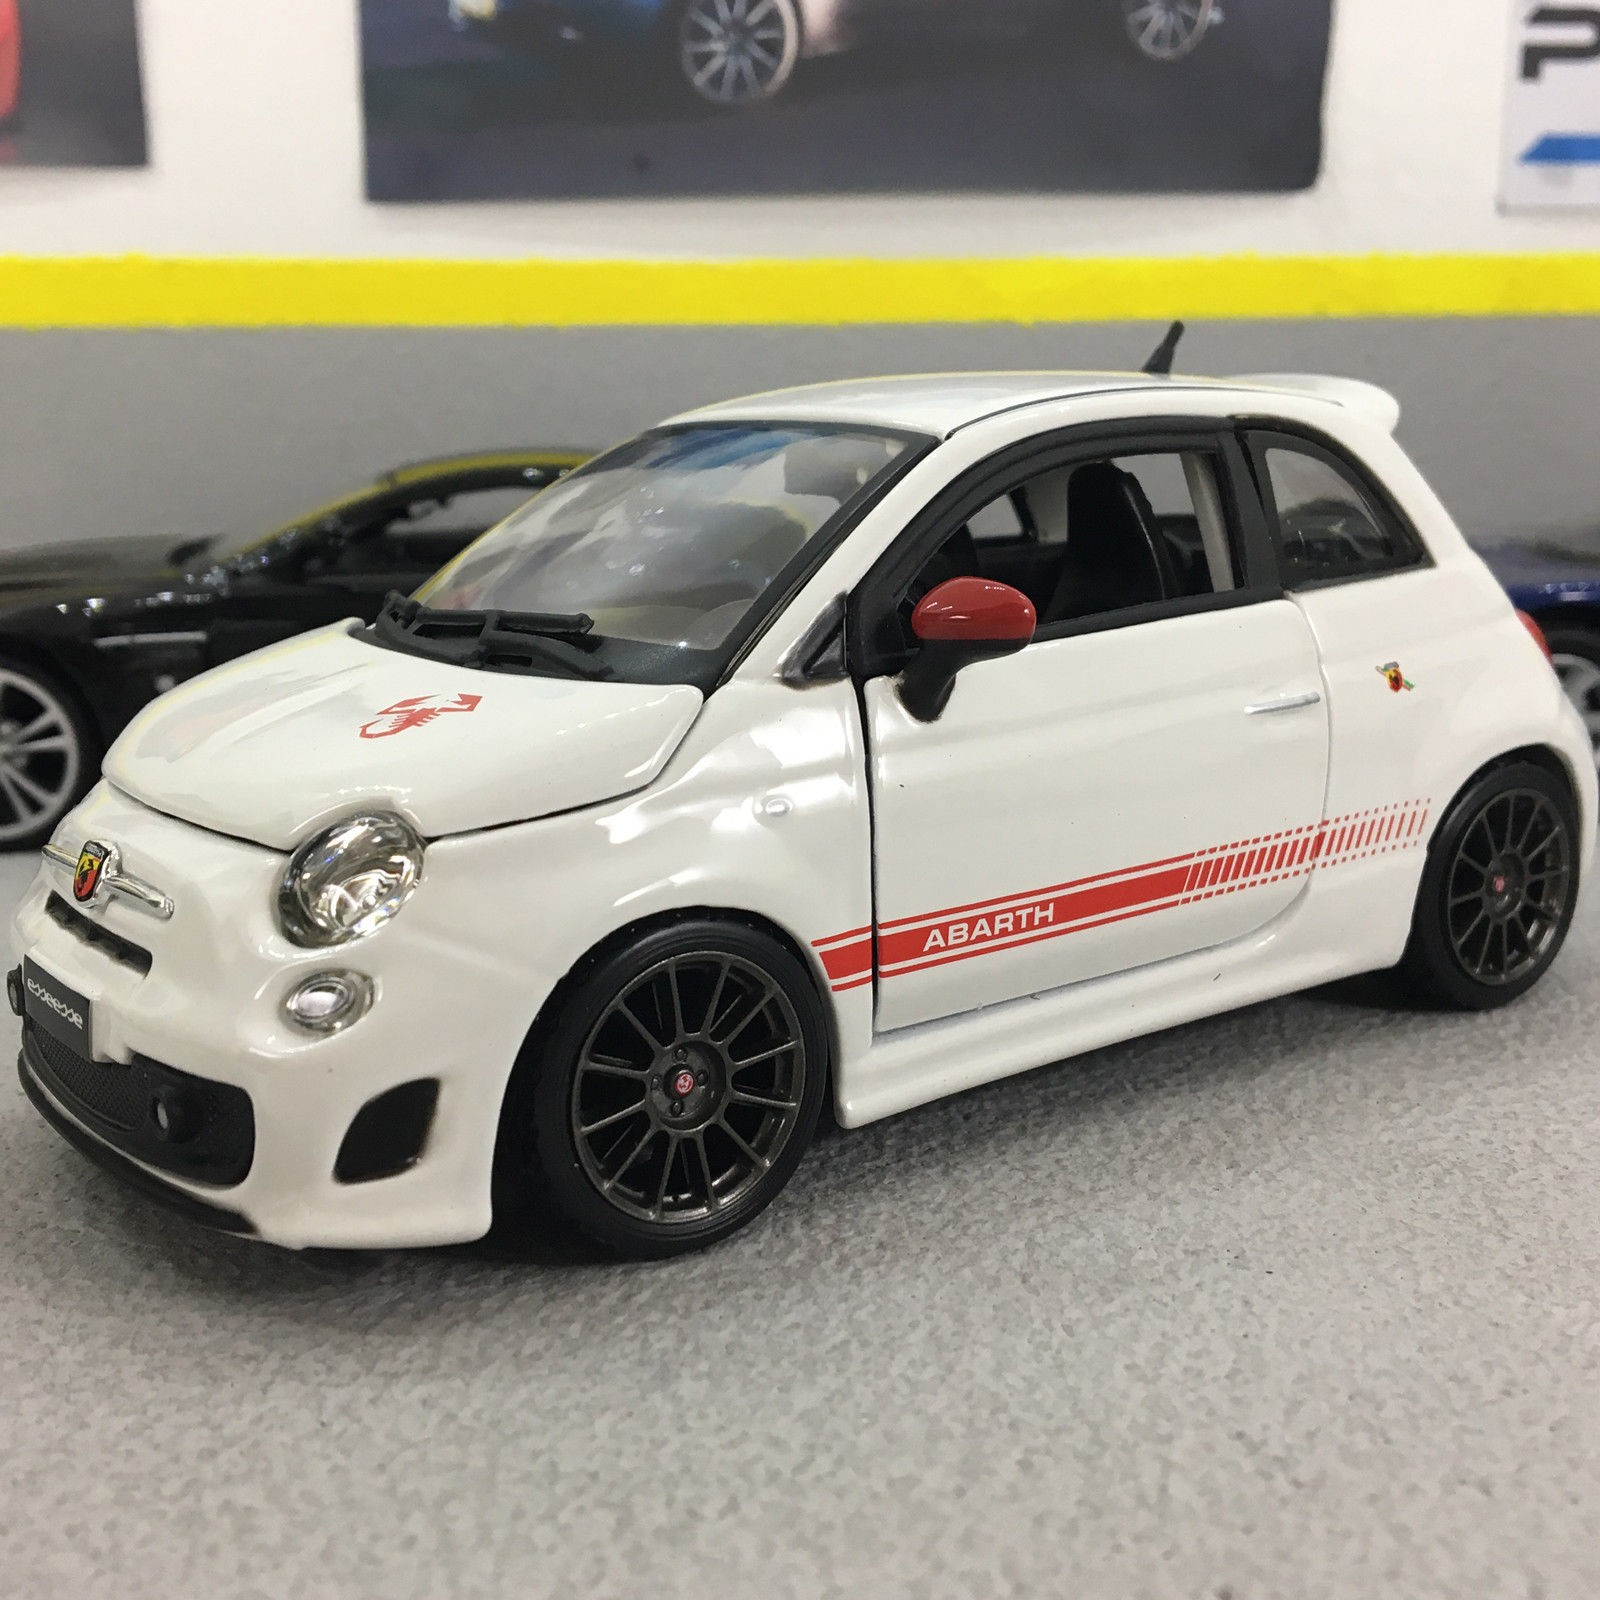 cars of wallpaper arbath front hd images f fiat abarth